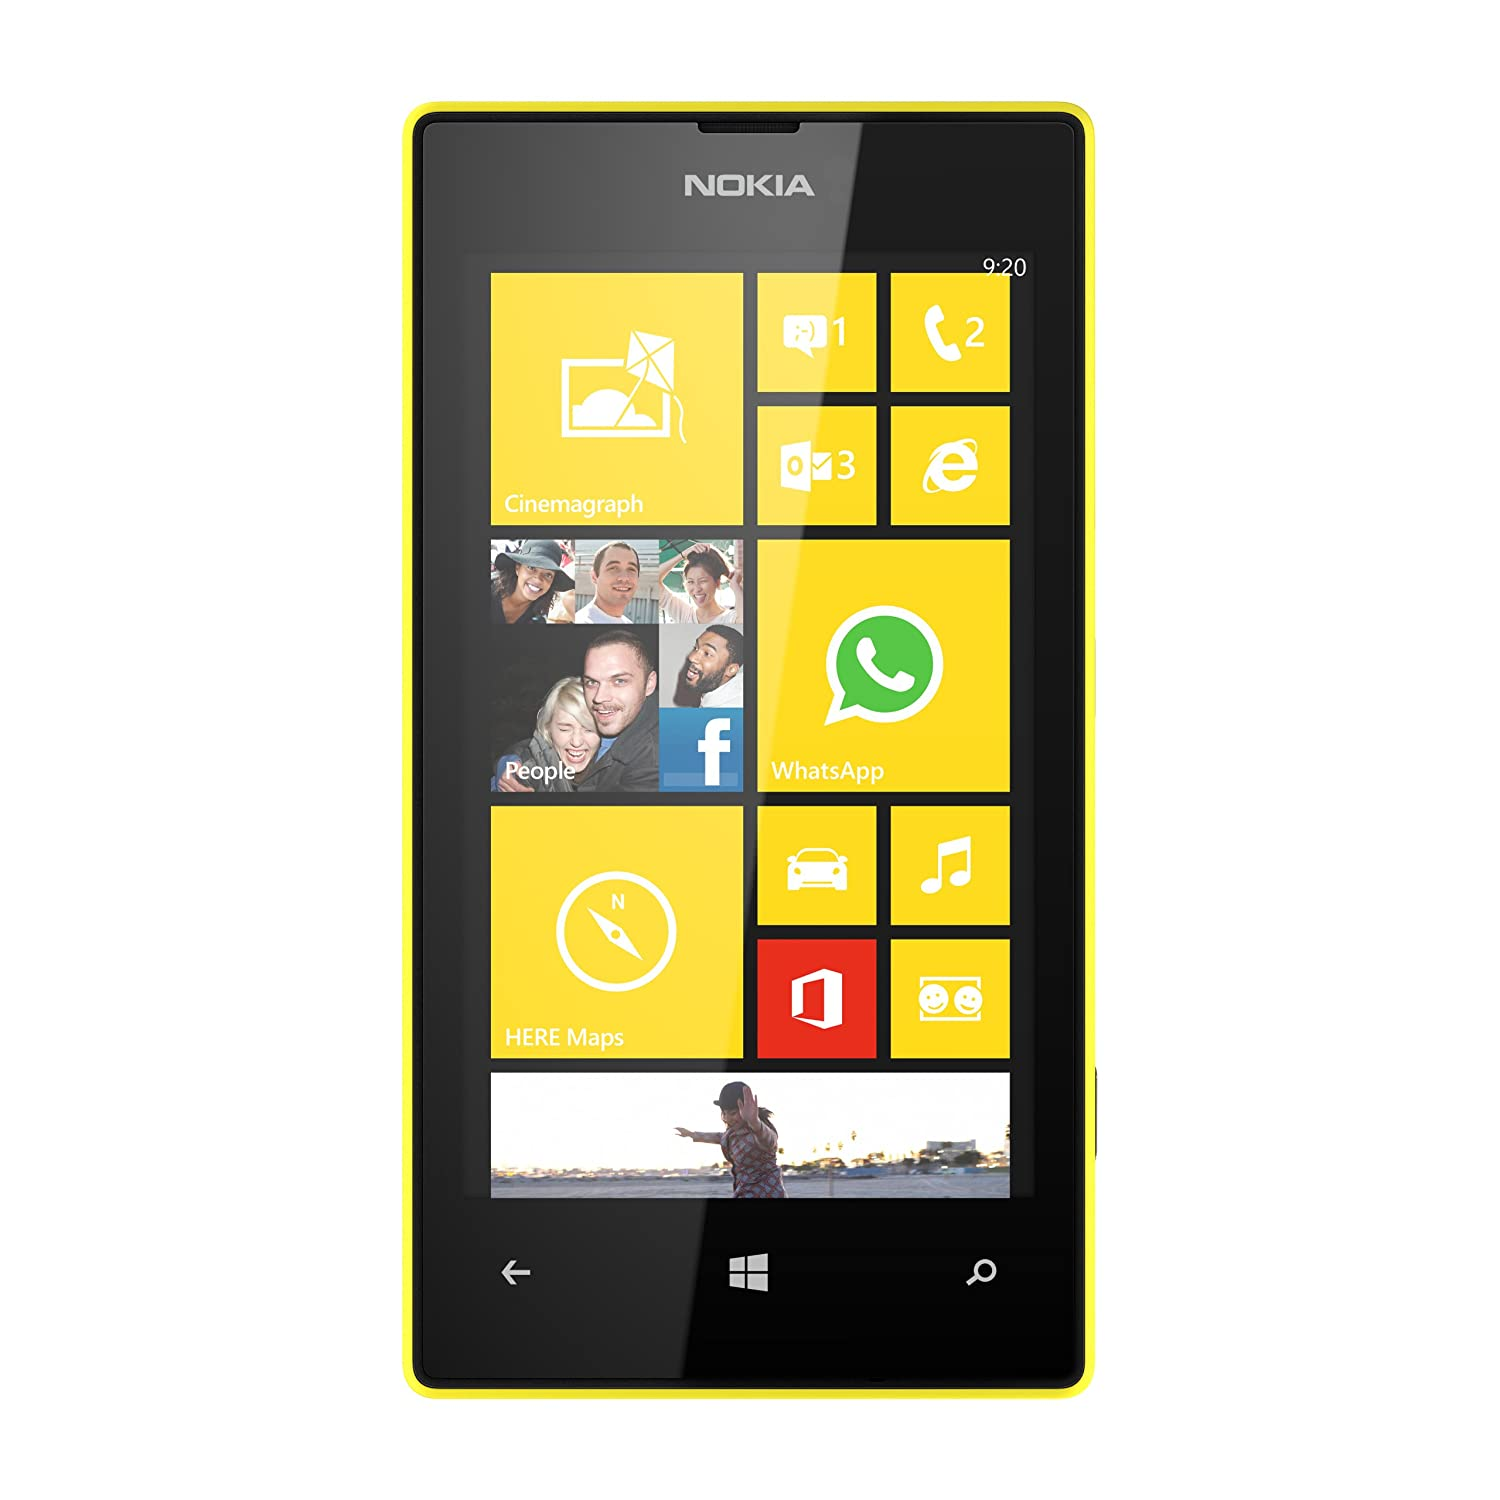 Lumia 521 denim update - Amazon Com Nokia Lumia 520 Unlocked Gsm Windows 8 Touchscreen Smartphone Yellow Cell Phones Accessories